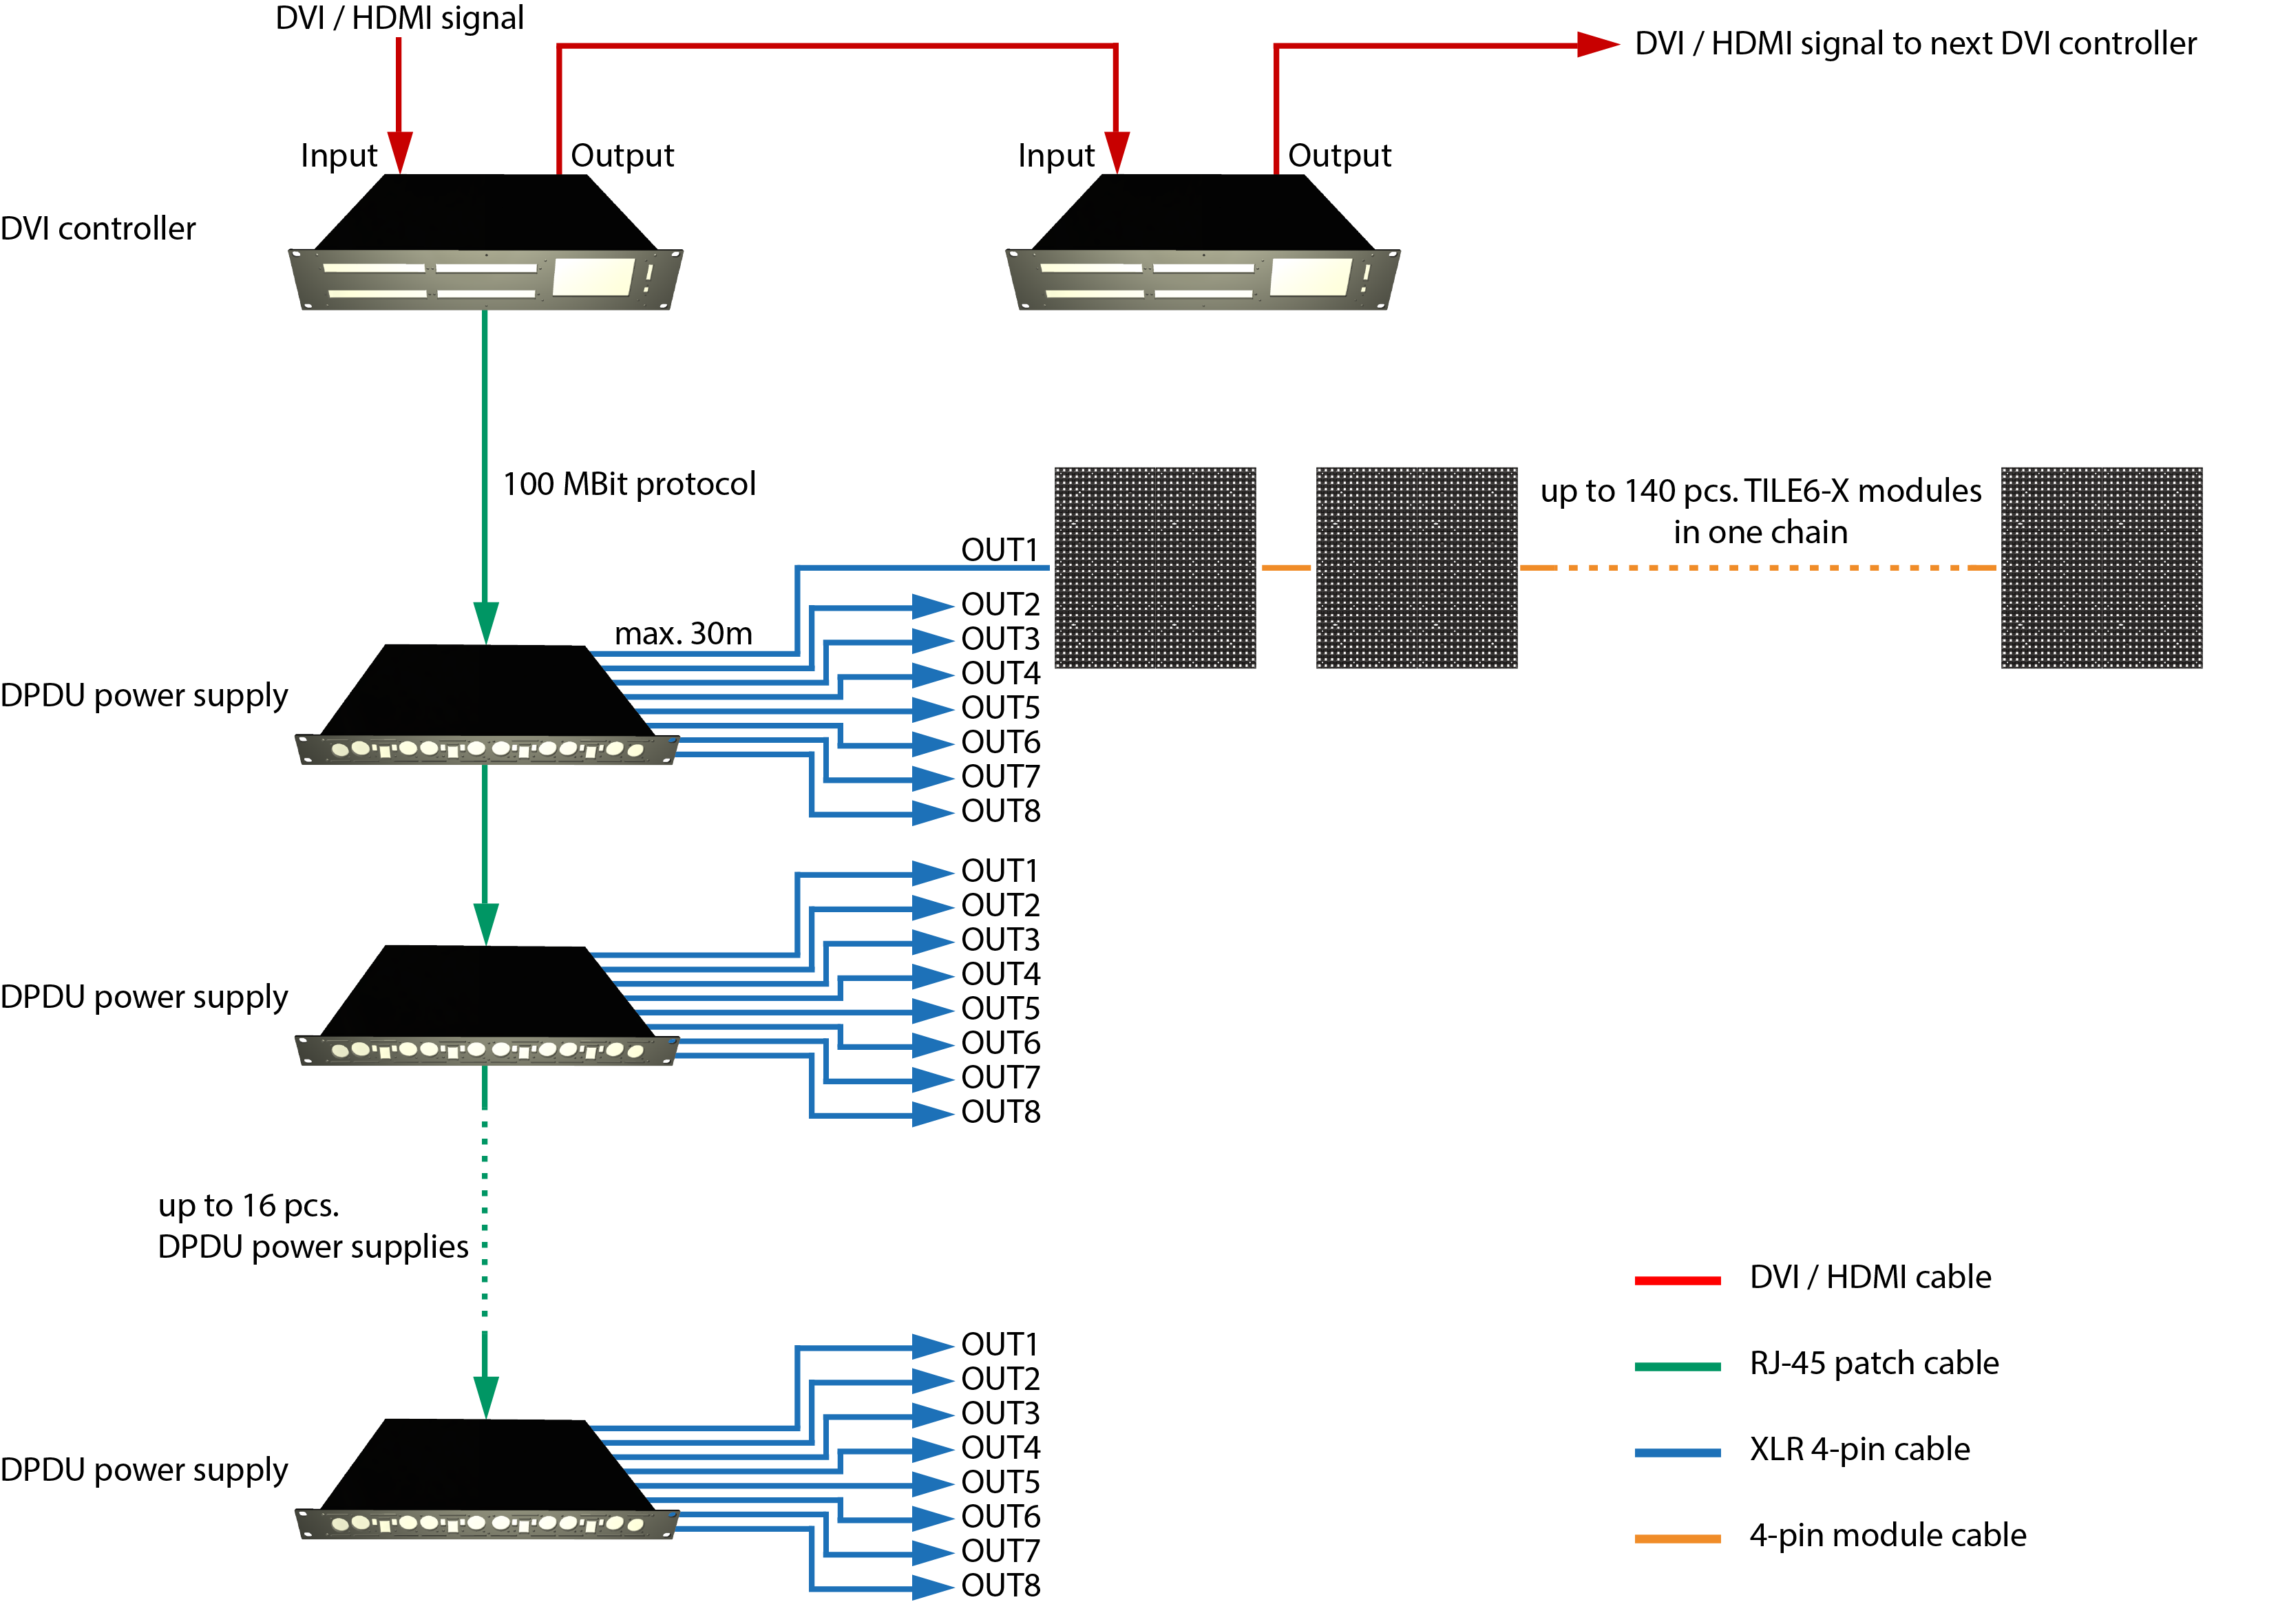 System diagram of a typical TILE6-X® LED video installation